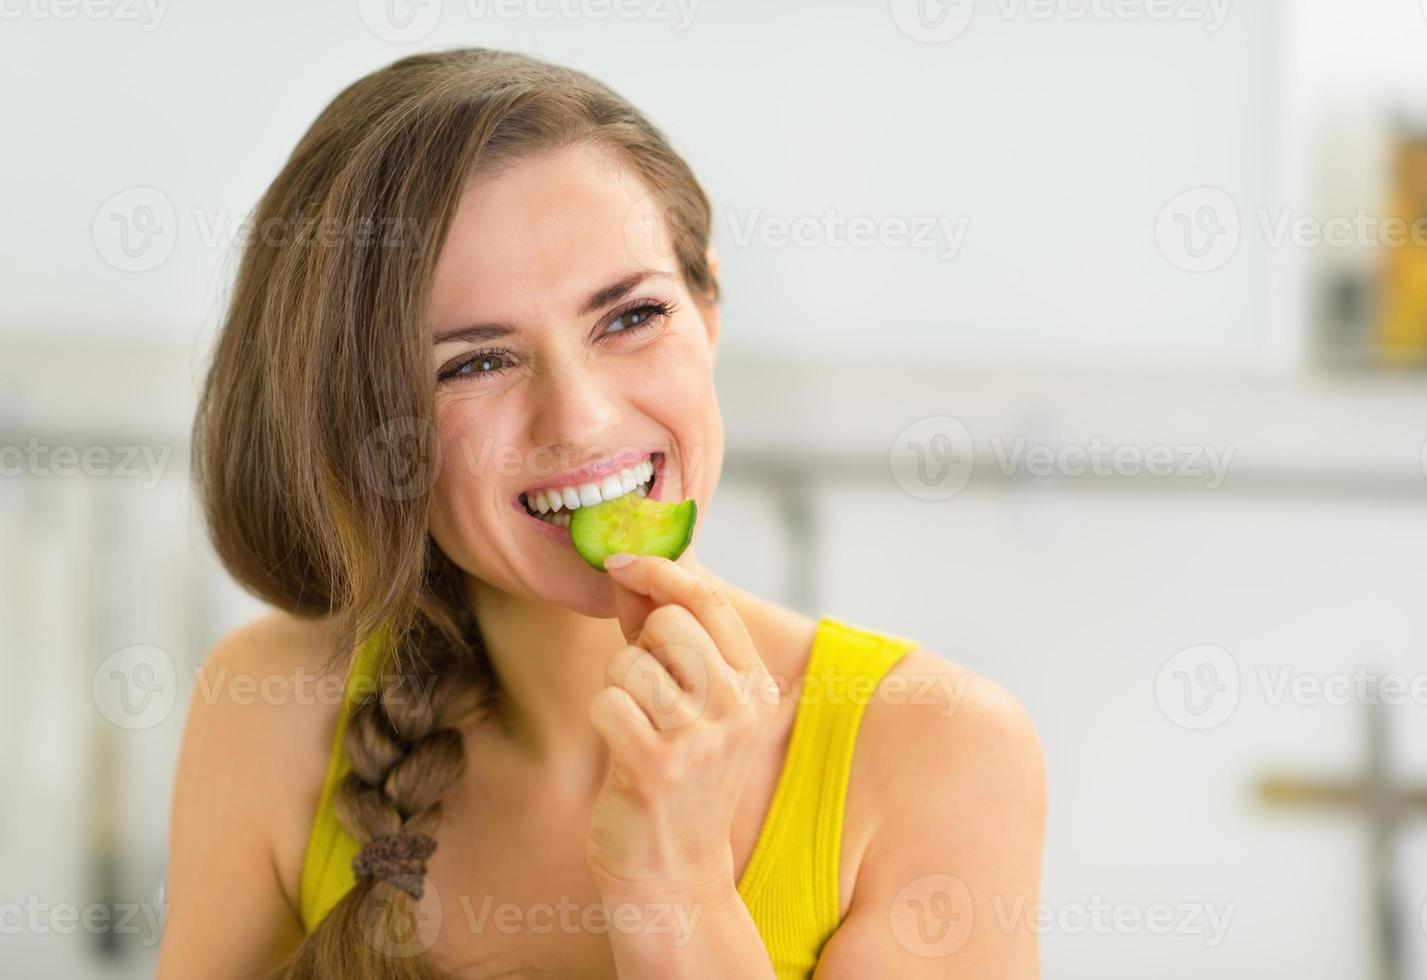 portrait of young woman eating cucumber in kitchen photo